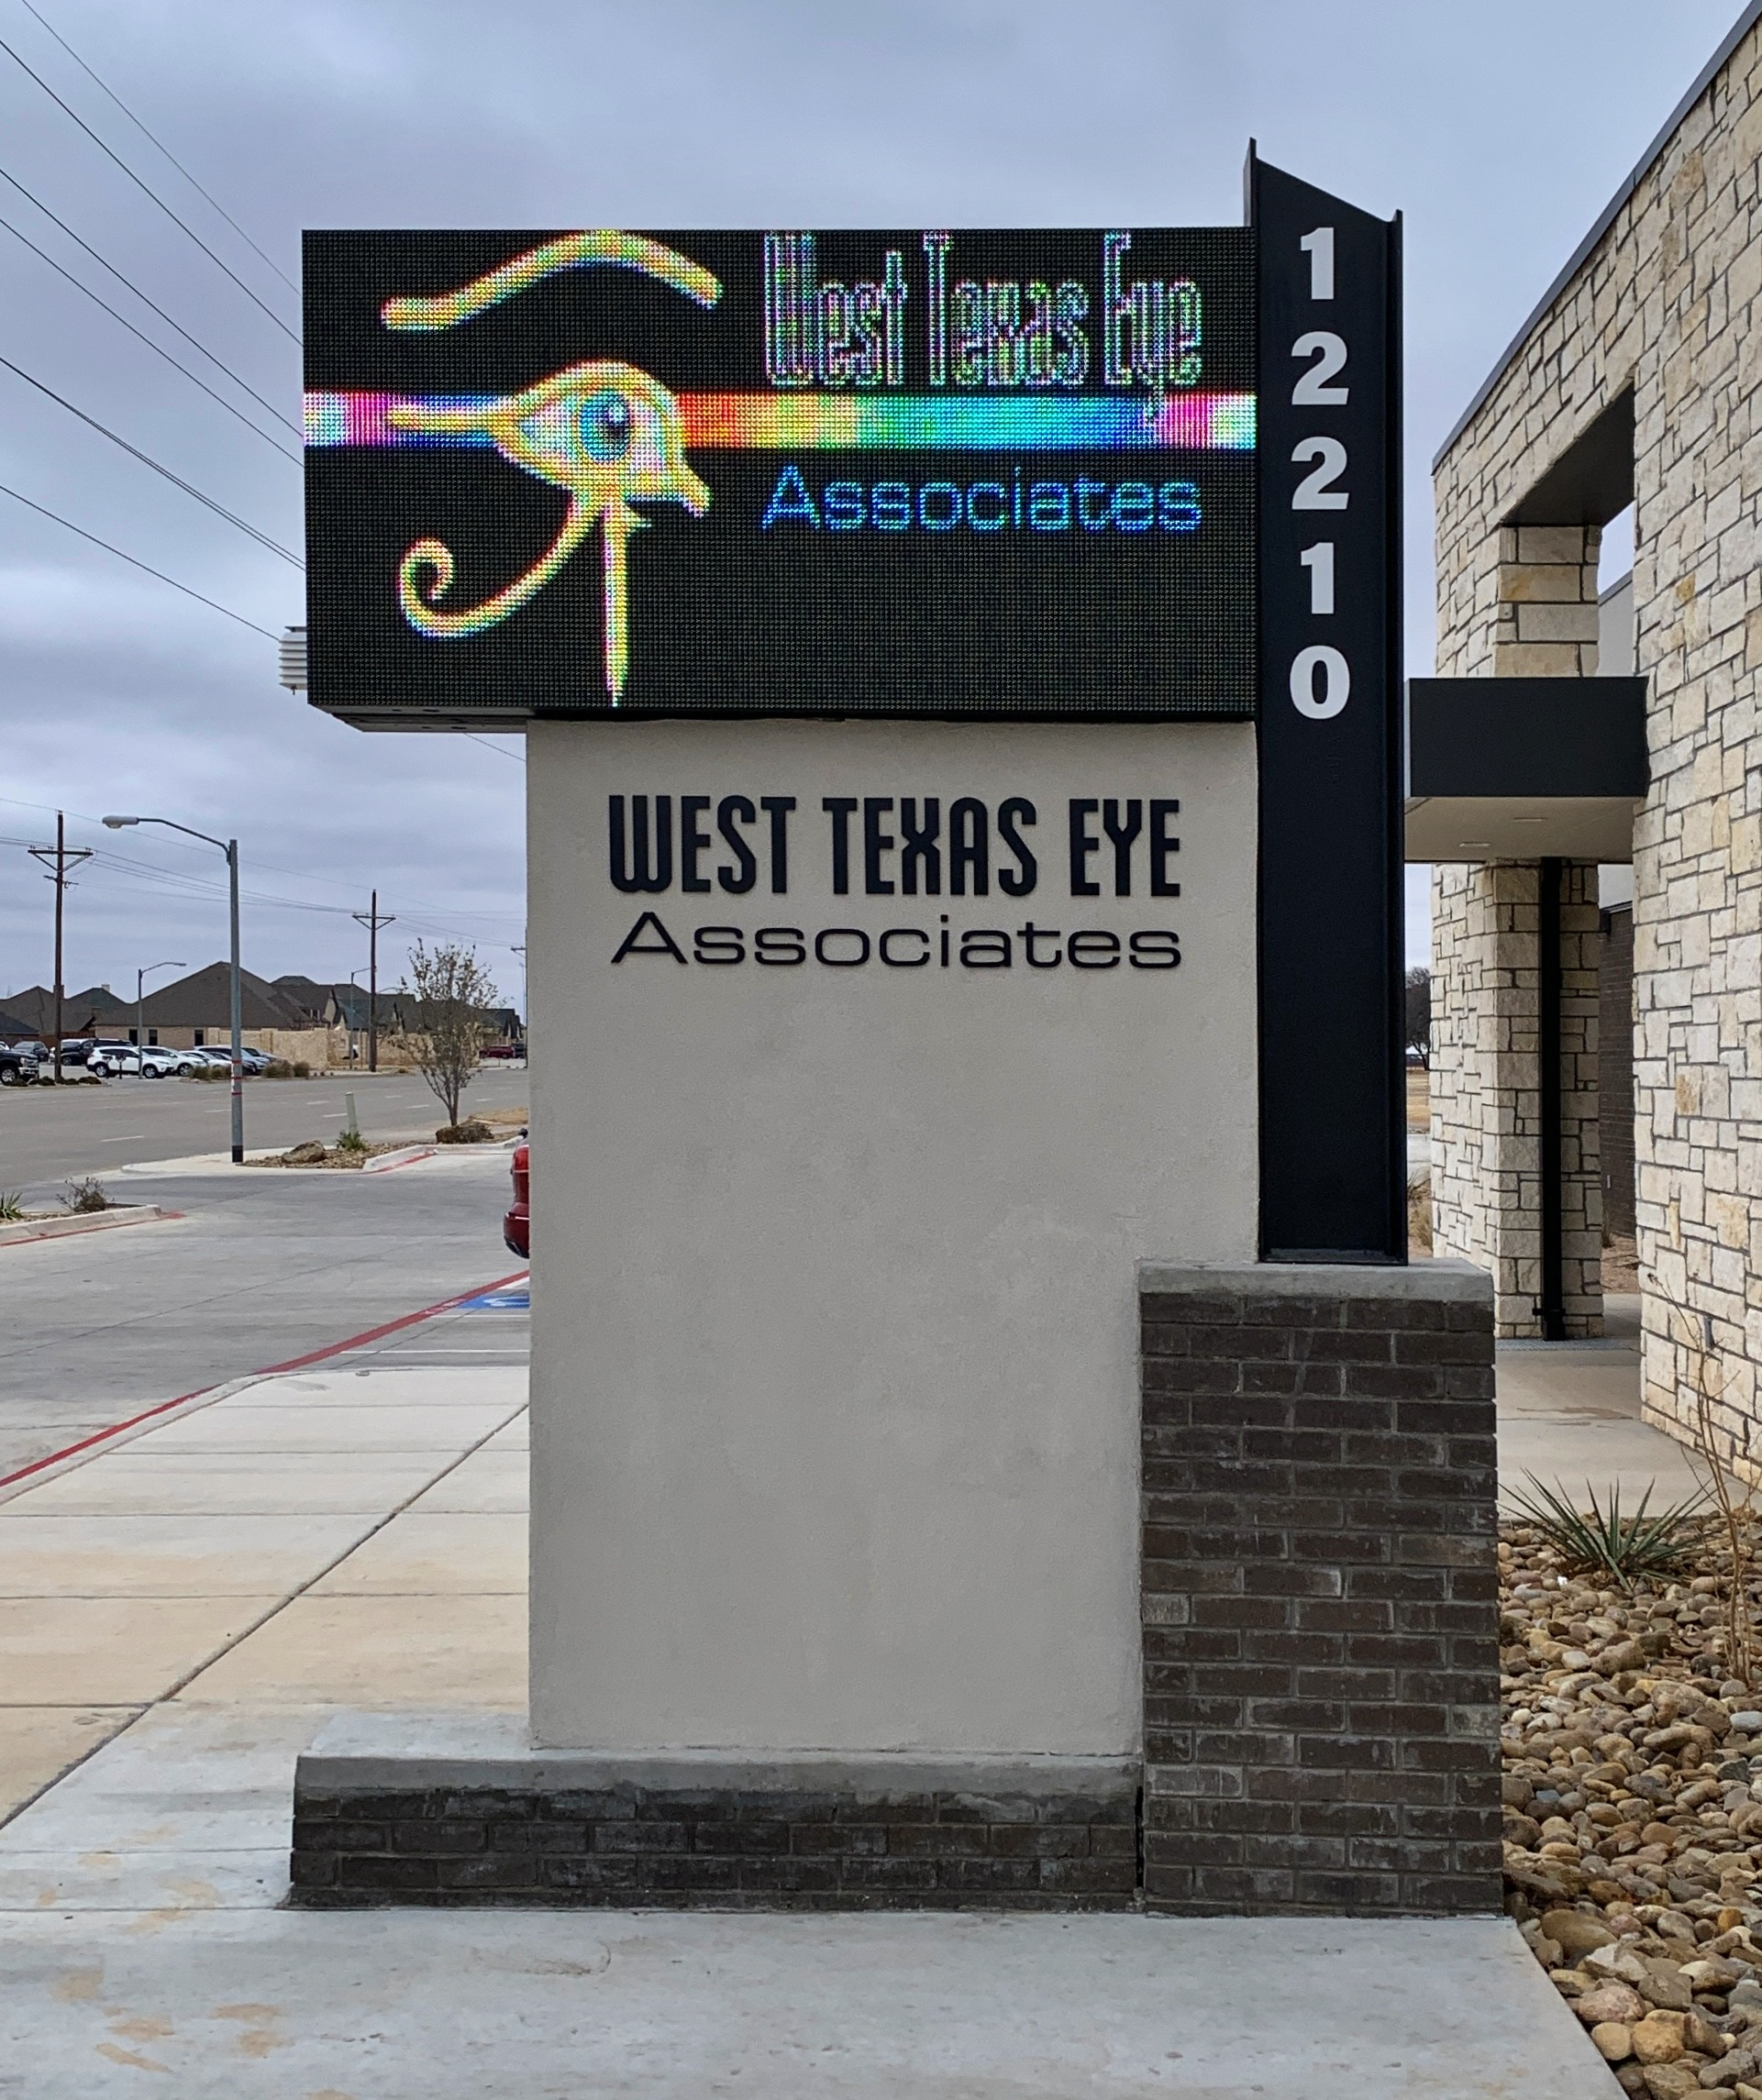 West Texas Eye Associates